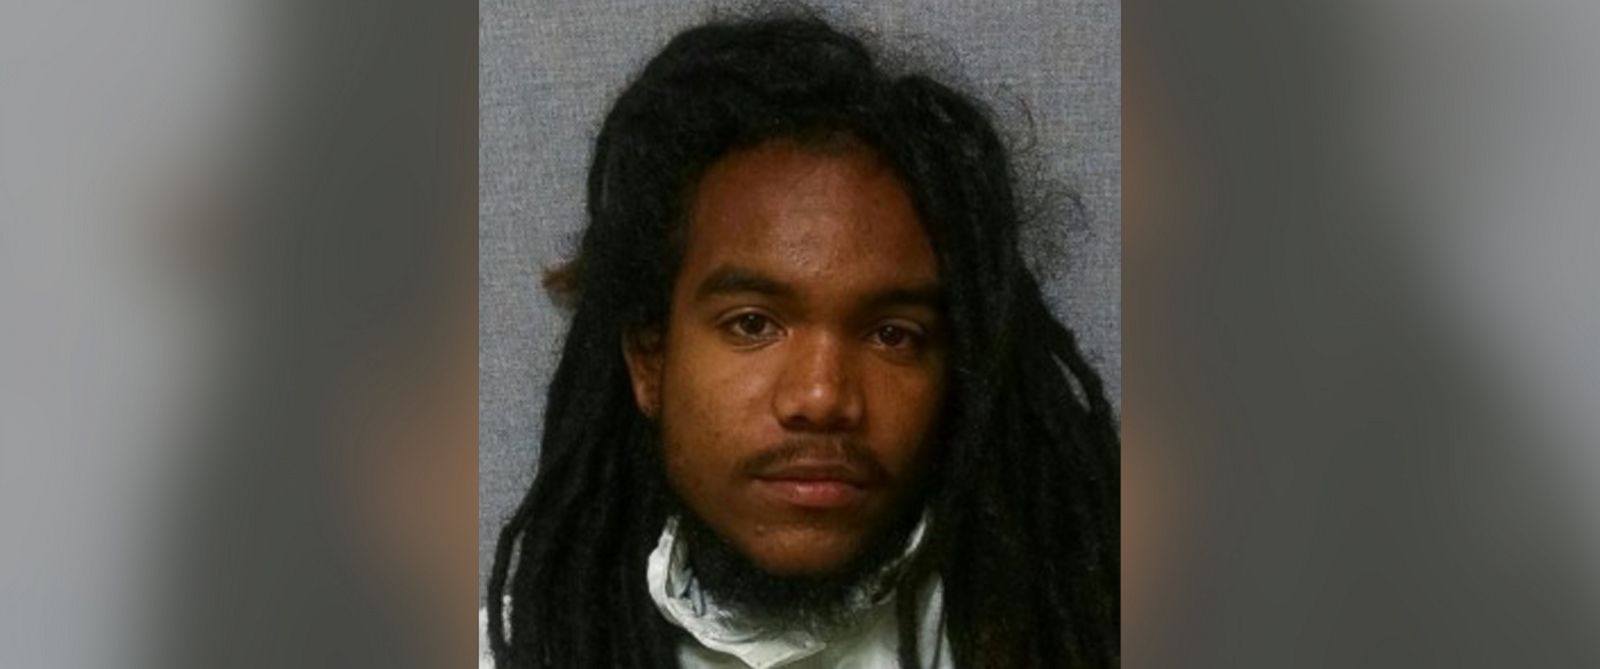 PHOTO: Rico Leblond was charged with first-degree murder in connection with the death of DeAndre Smith, also known as Zella Ziona.